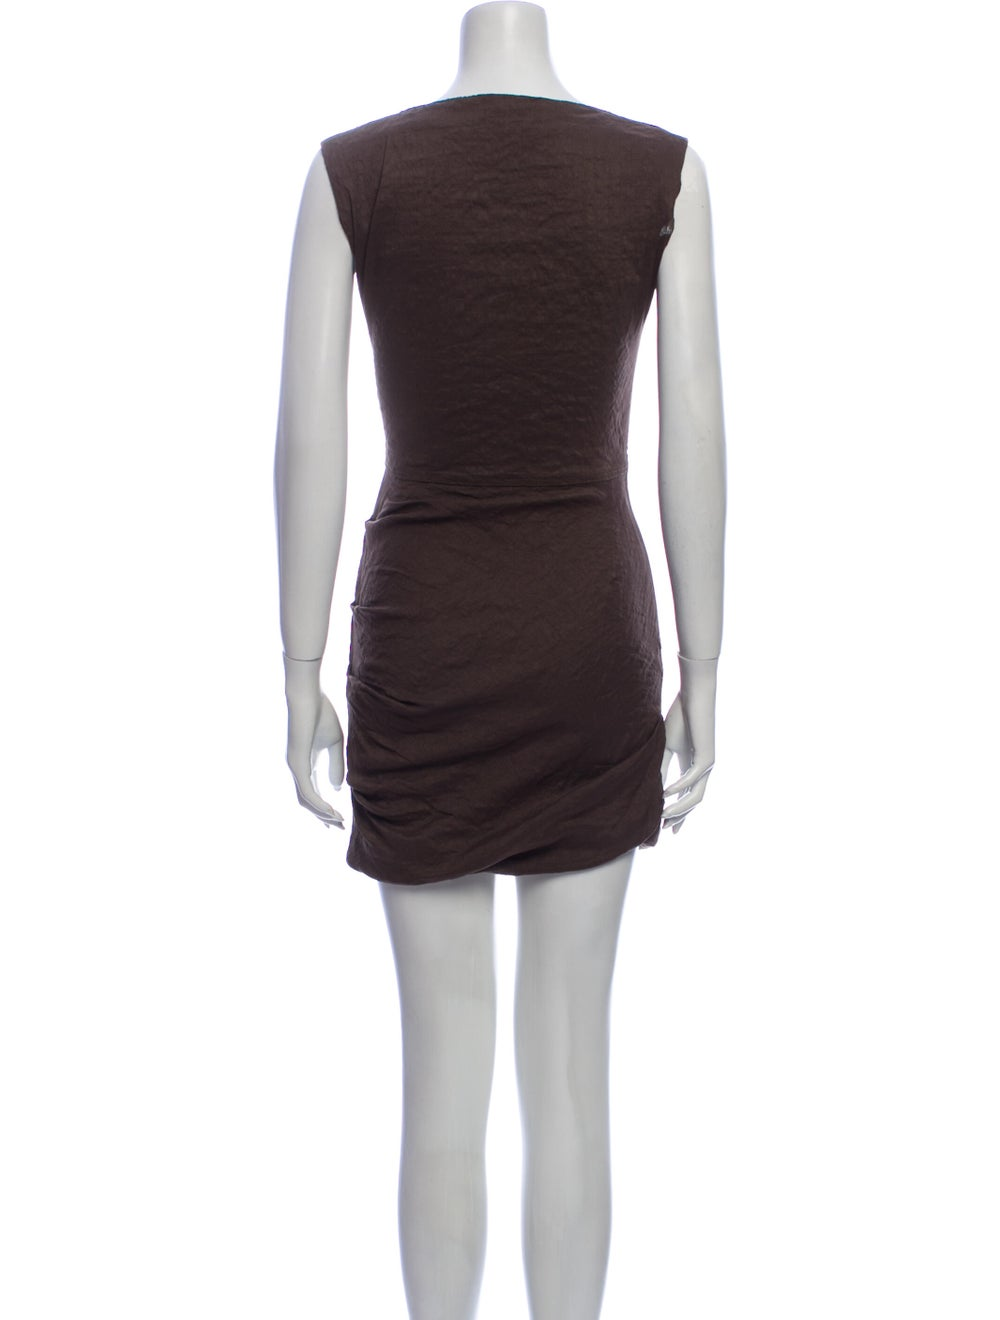 La Petite S***** Linen Mini Dress Brown - image 3